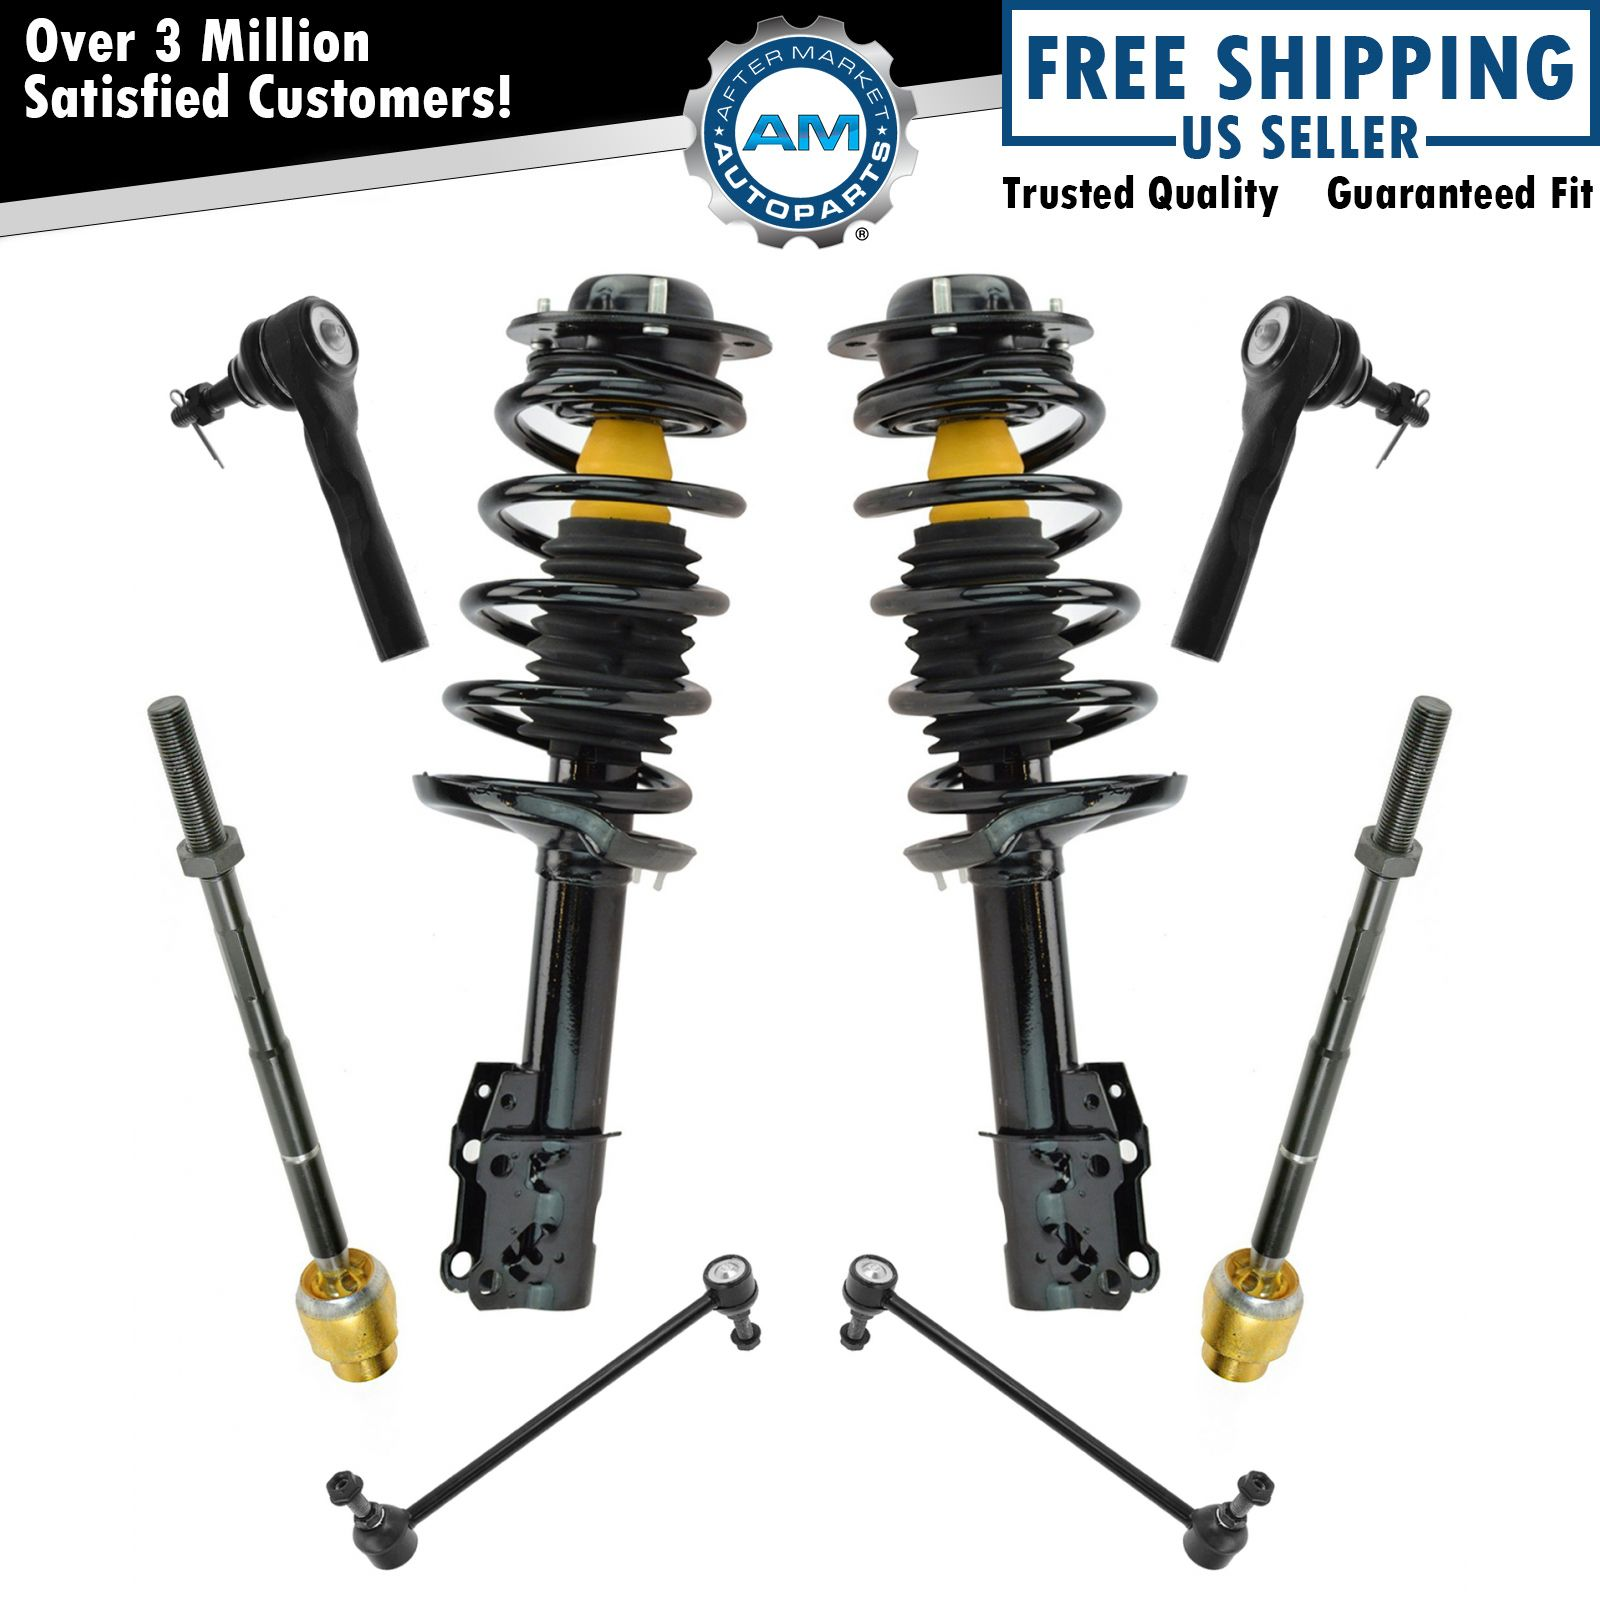 Spring Strut Assembly,OCPTY Complete Struts Shocks Control Arm and Ball Joint Assembly Stabilizer Bar Link Tie Rod End Fits for 2007-2012 Versa 343465 172352 FL 172351 FR Replace Strut